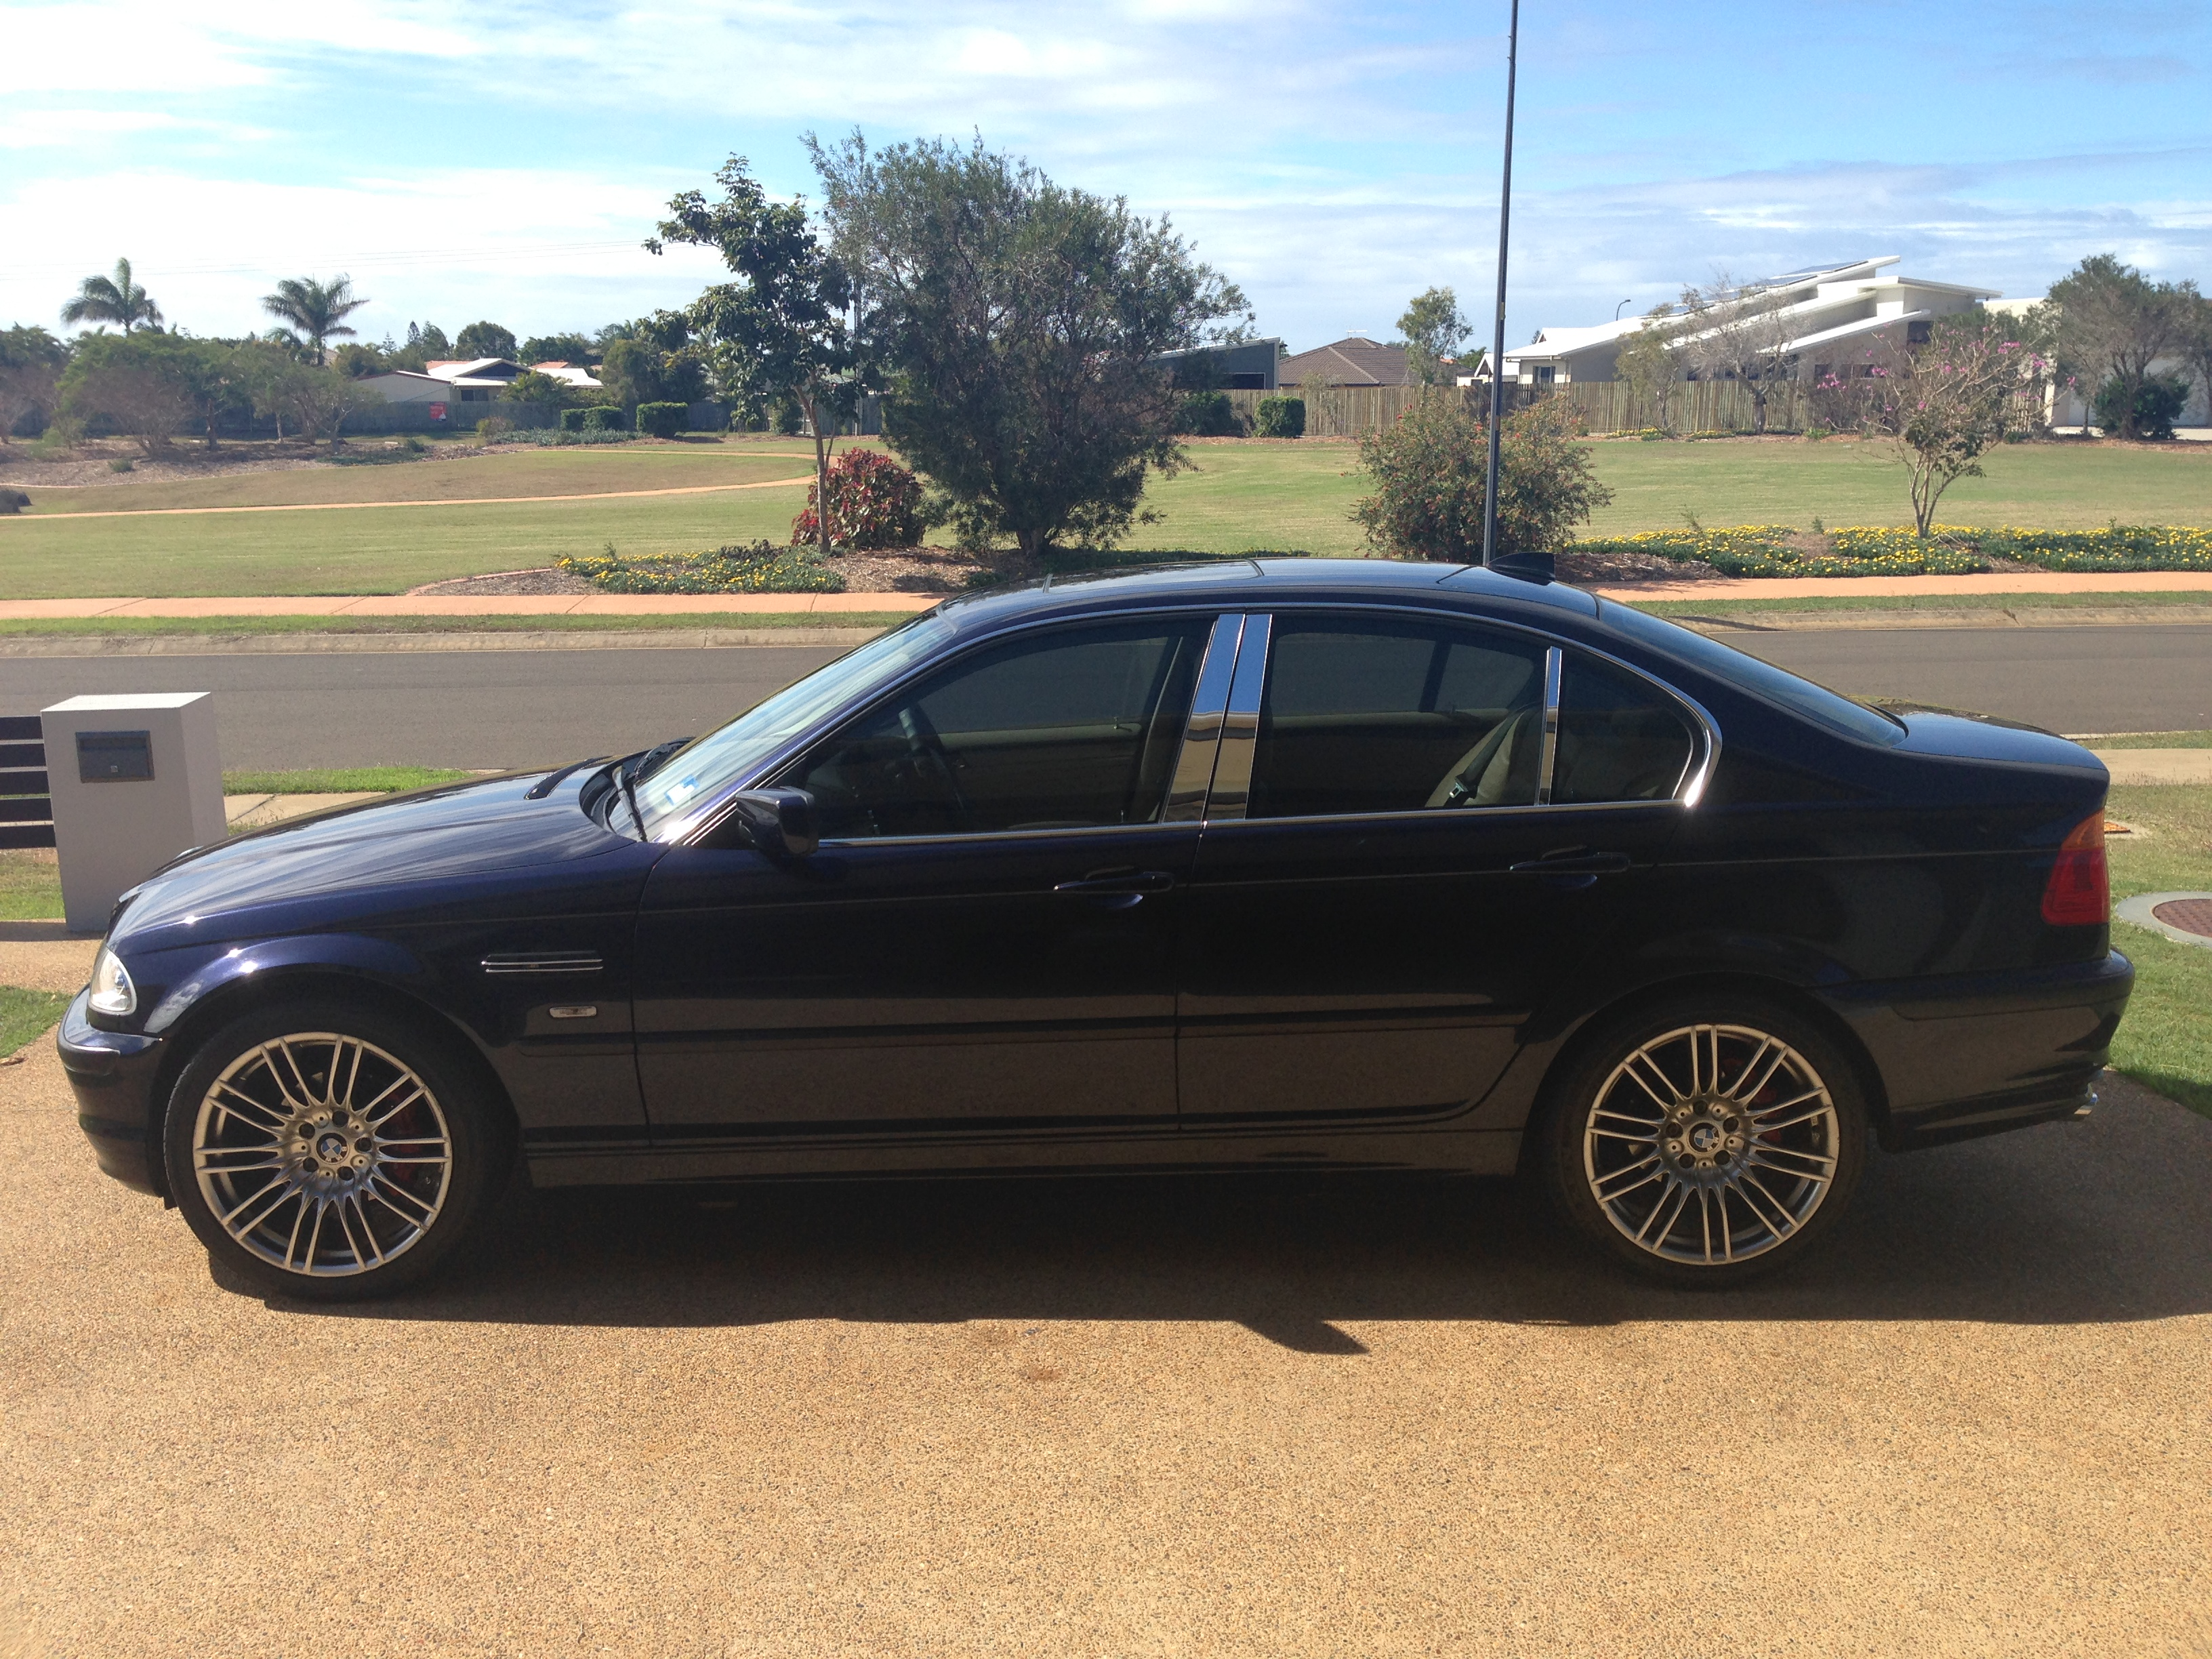 2000 bmw 323i for sale qld brisbane north. Black Bedroom Furniture Sets. Home Design Ideas